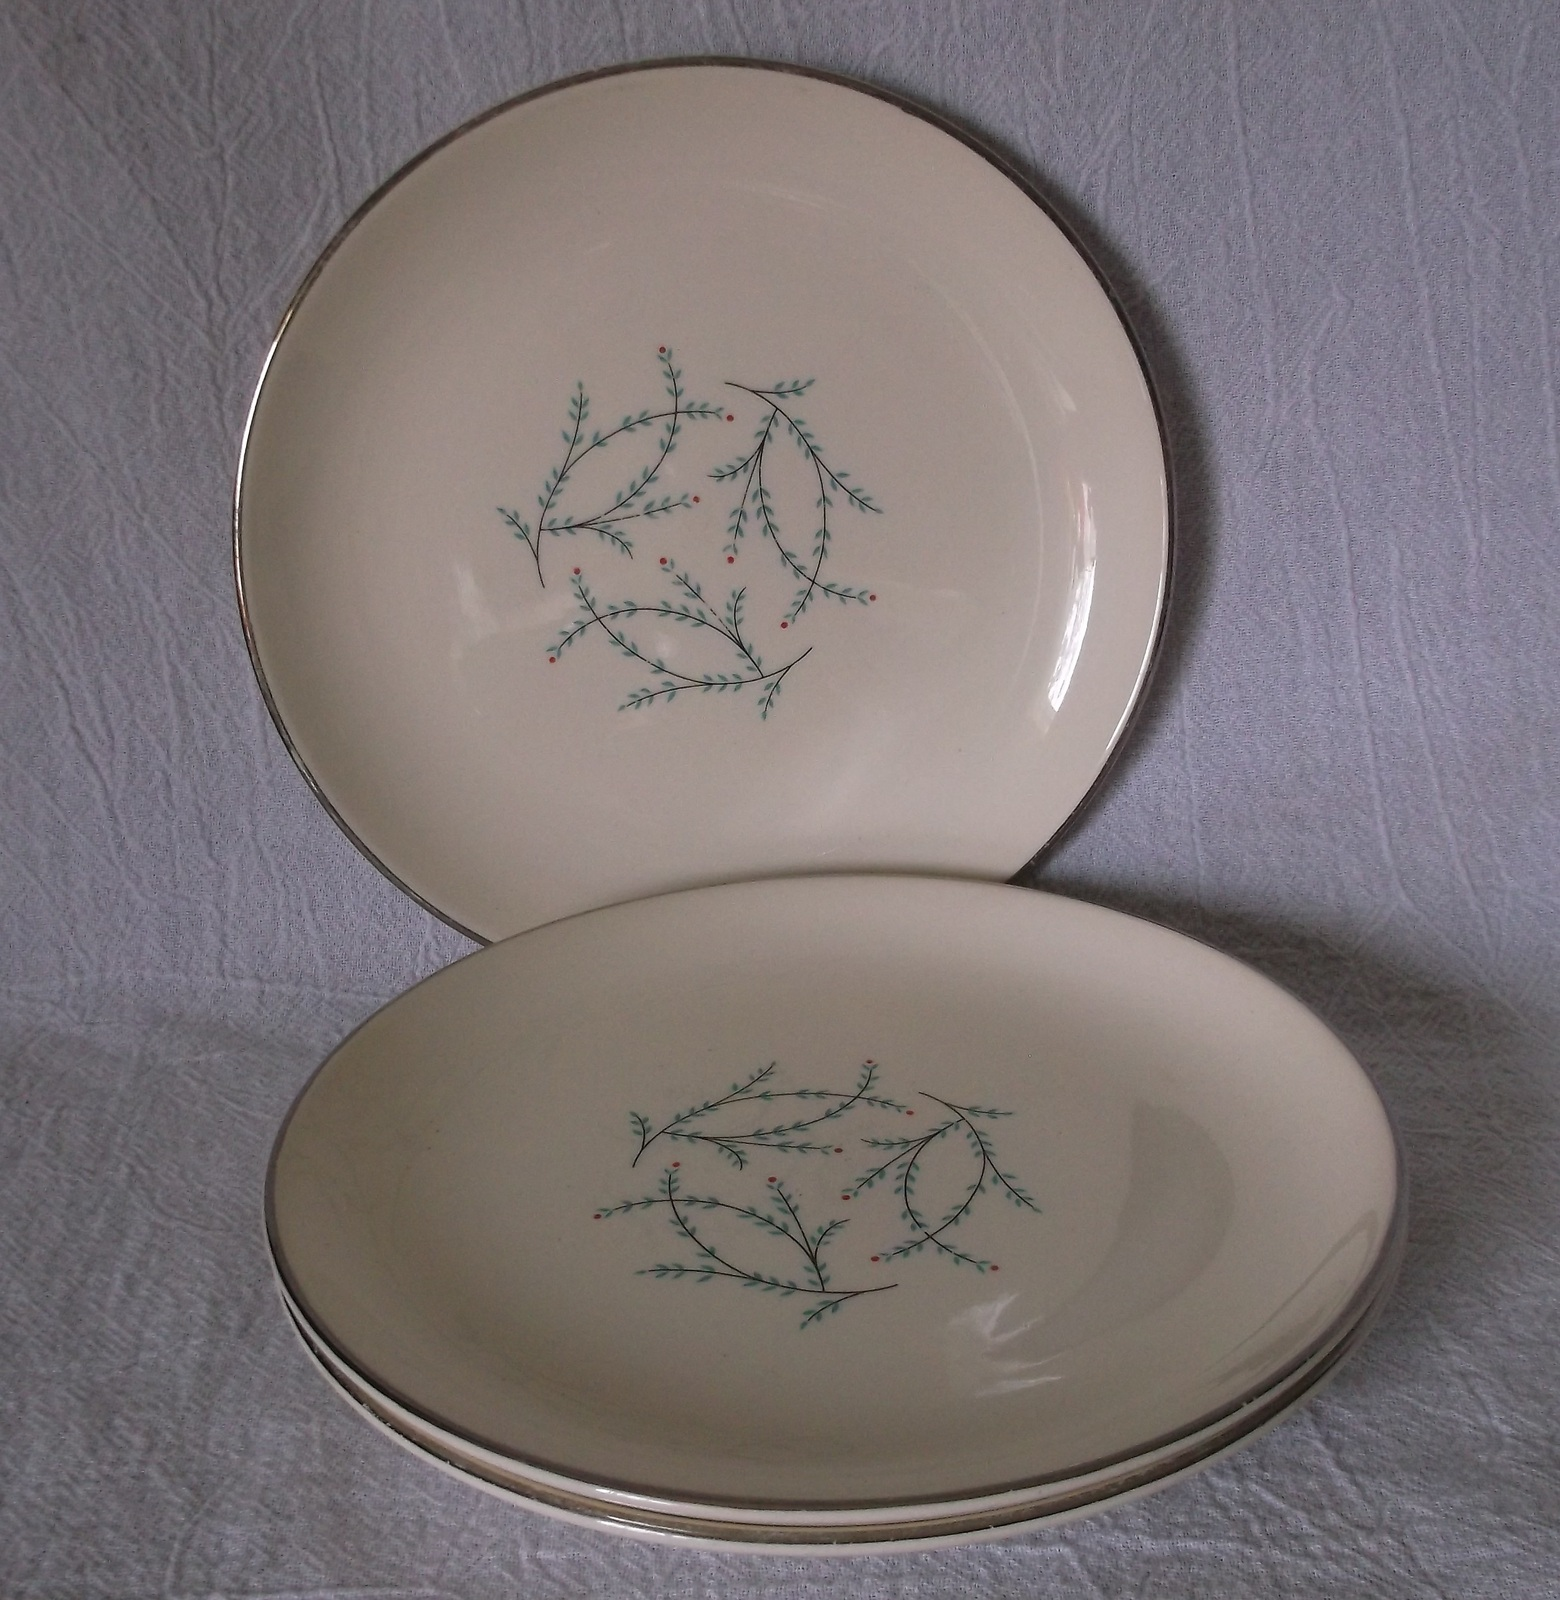 Tst blue twig bread and butter plates all3 & Taylor Smith Taylor BLUE TWIG Plates Vintage and 50 similar items